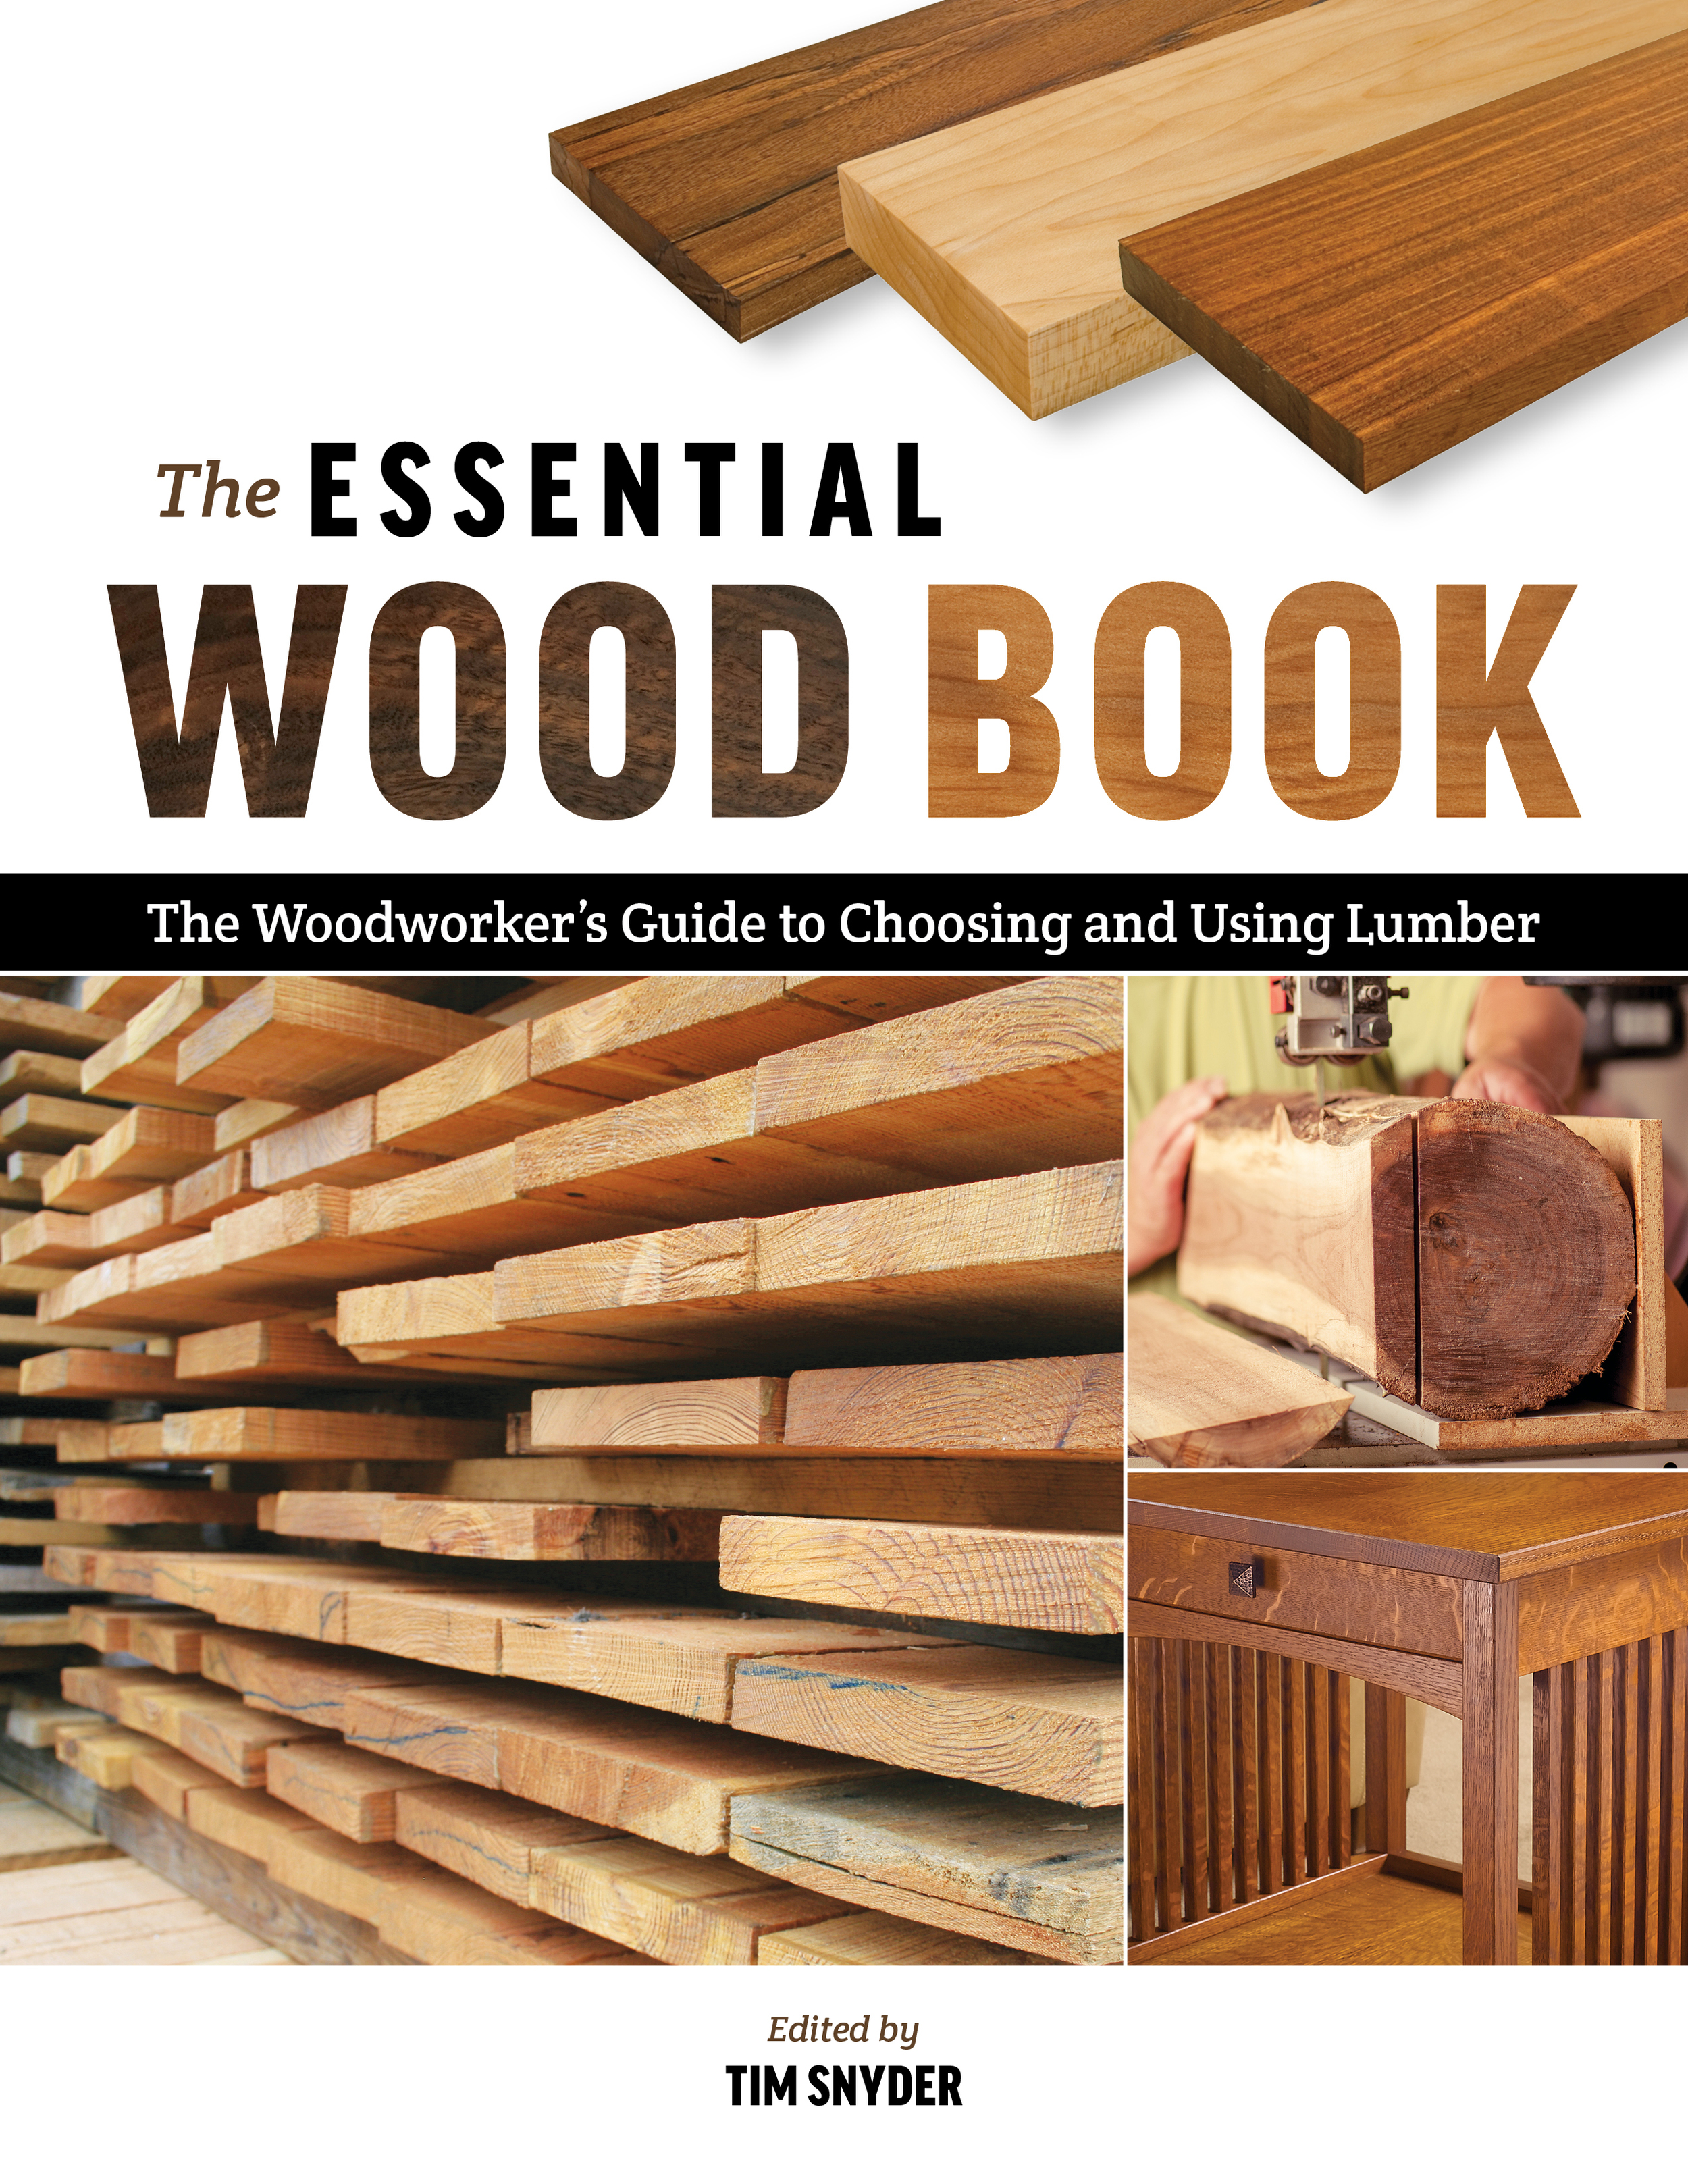 The Right Lumber Makes All the Difference...